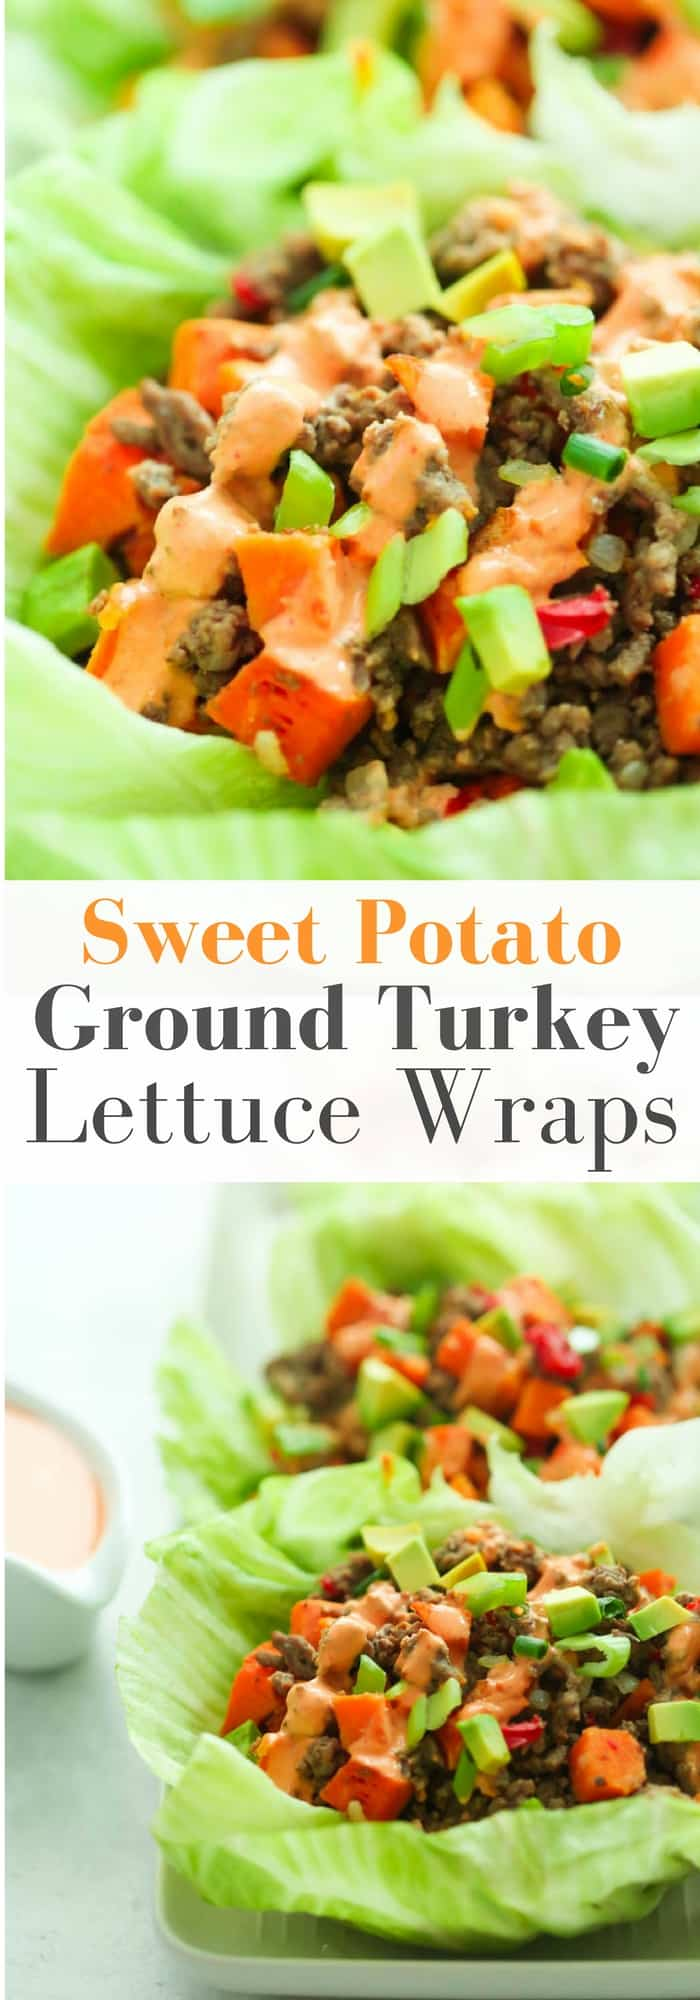 Ground Turkey Sweet Potato Lettuce Wraps - Fresh and flavourful, these Ground Turkey Sweet Potato Lettuce Wraps can easily be prepared in just 20 minutes. It's a perfect gluten-free and low-carb summer lunch or dinner.